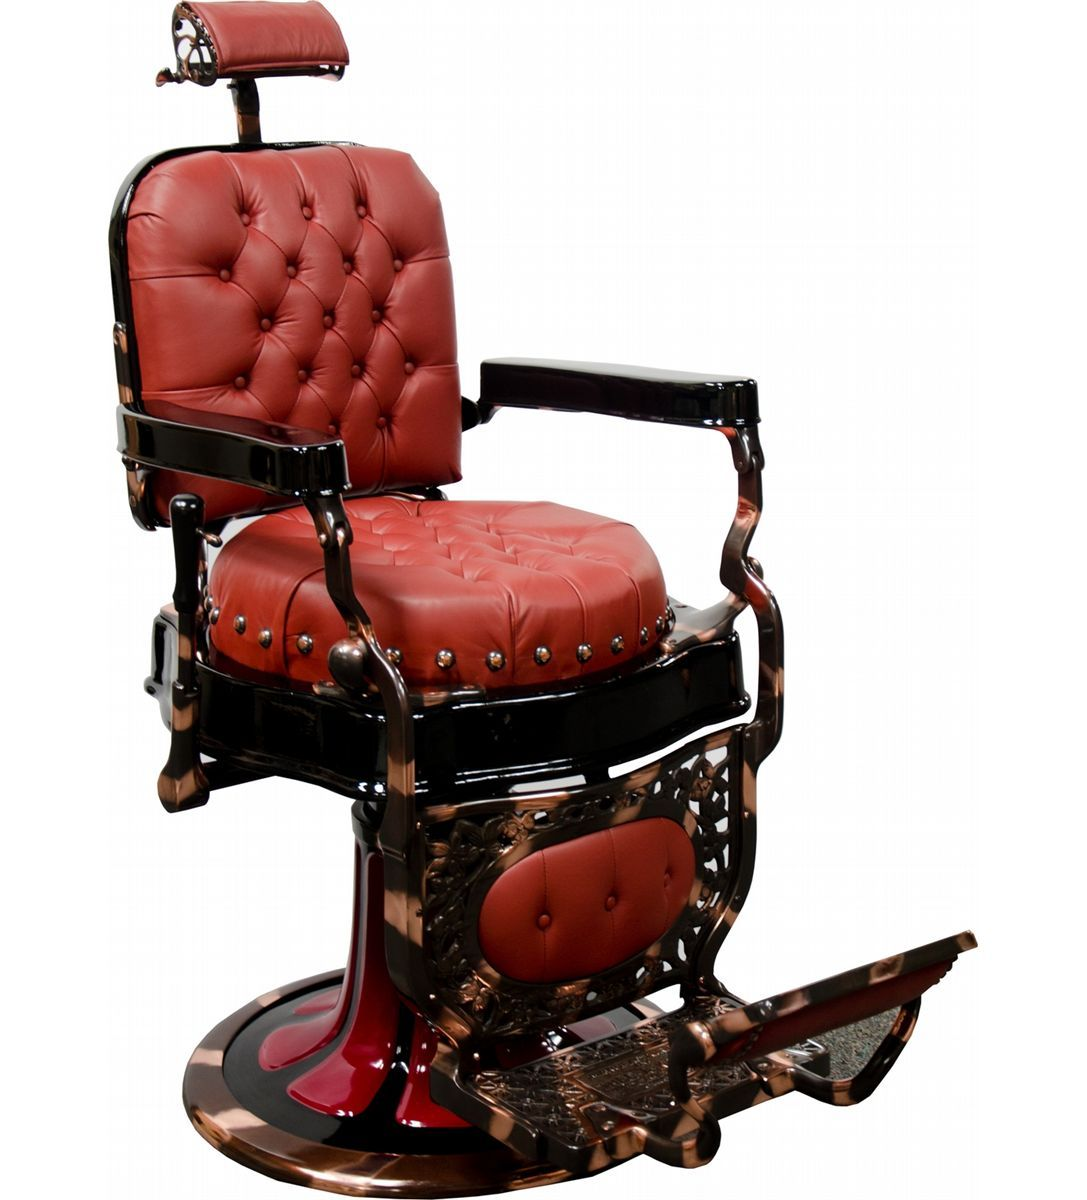 Antique barber chairs koken - Vintage Barber Chairs Google Search